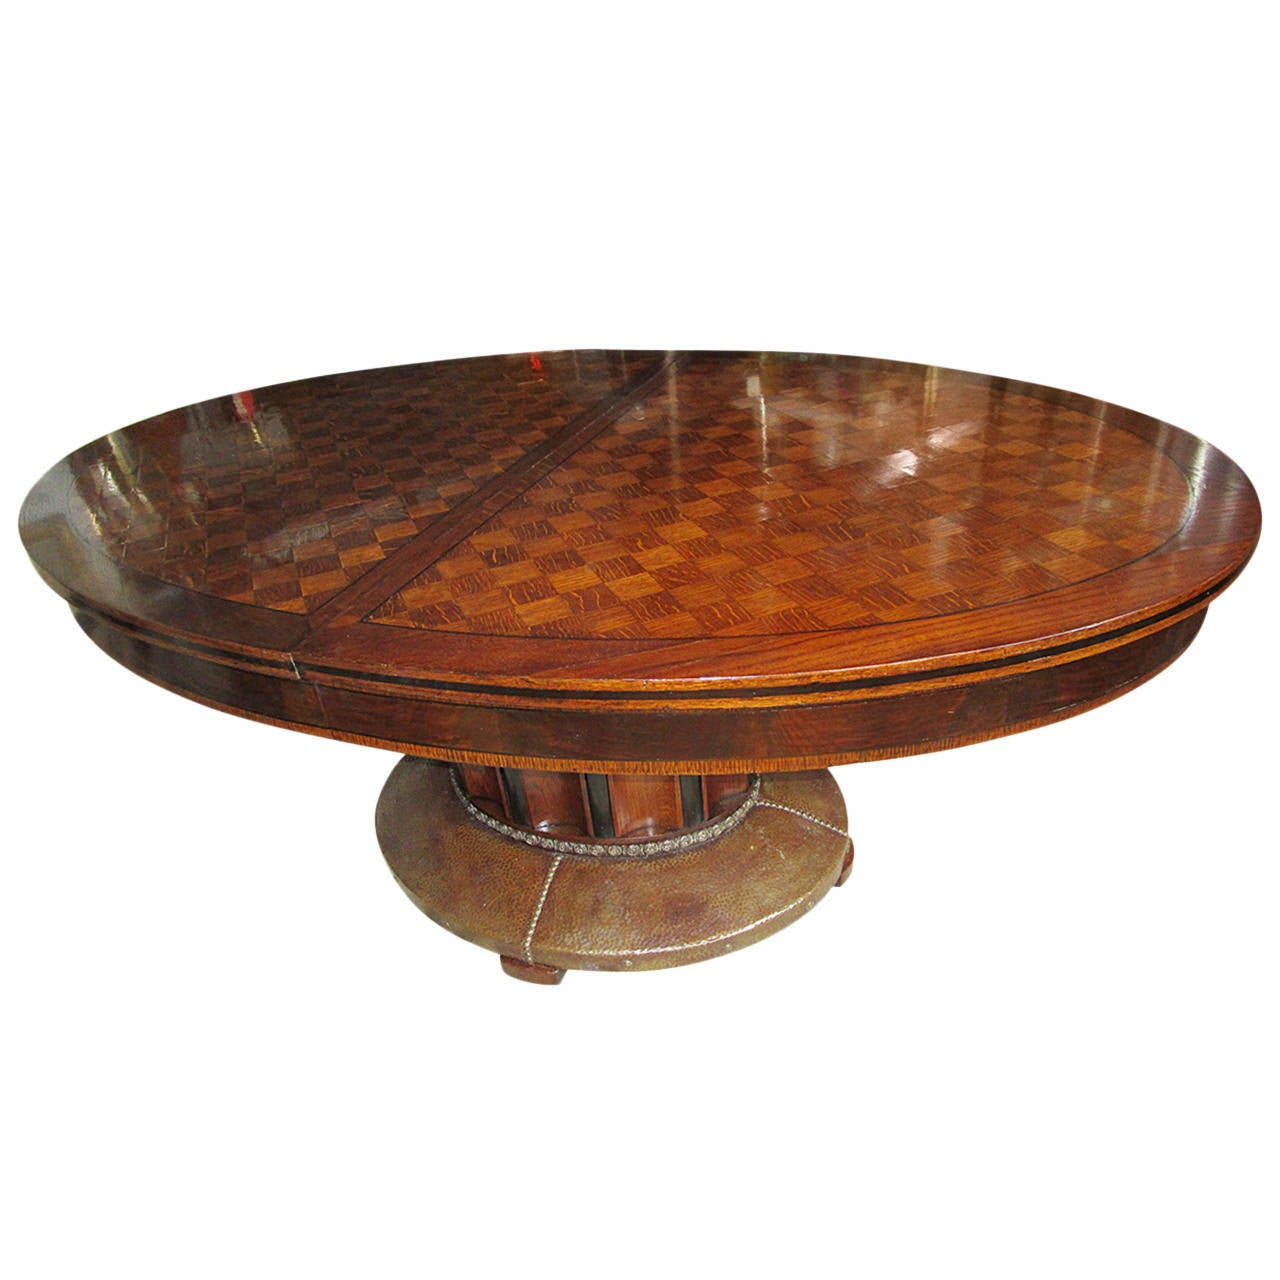 Oval Parquetry Dining Table with Hammered Copper Base by De Coene Freres